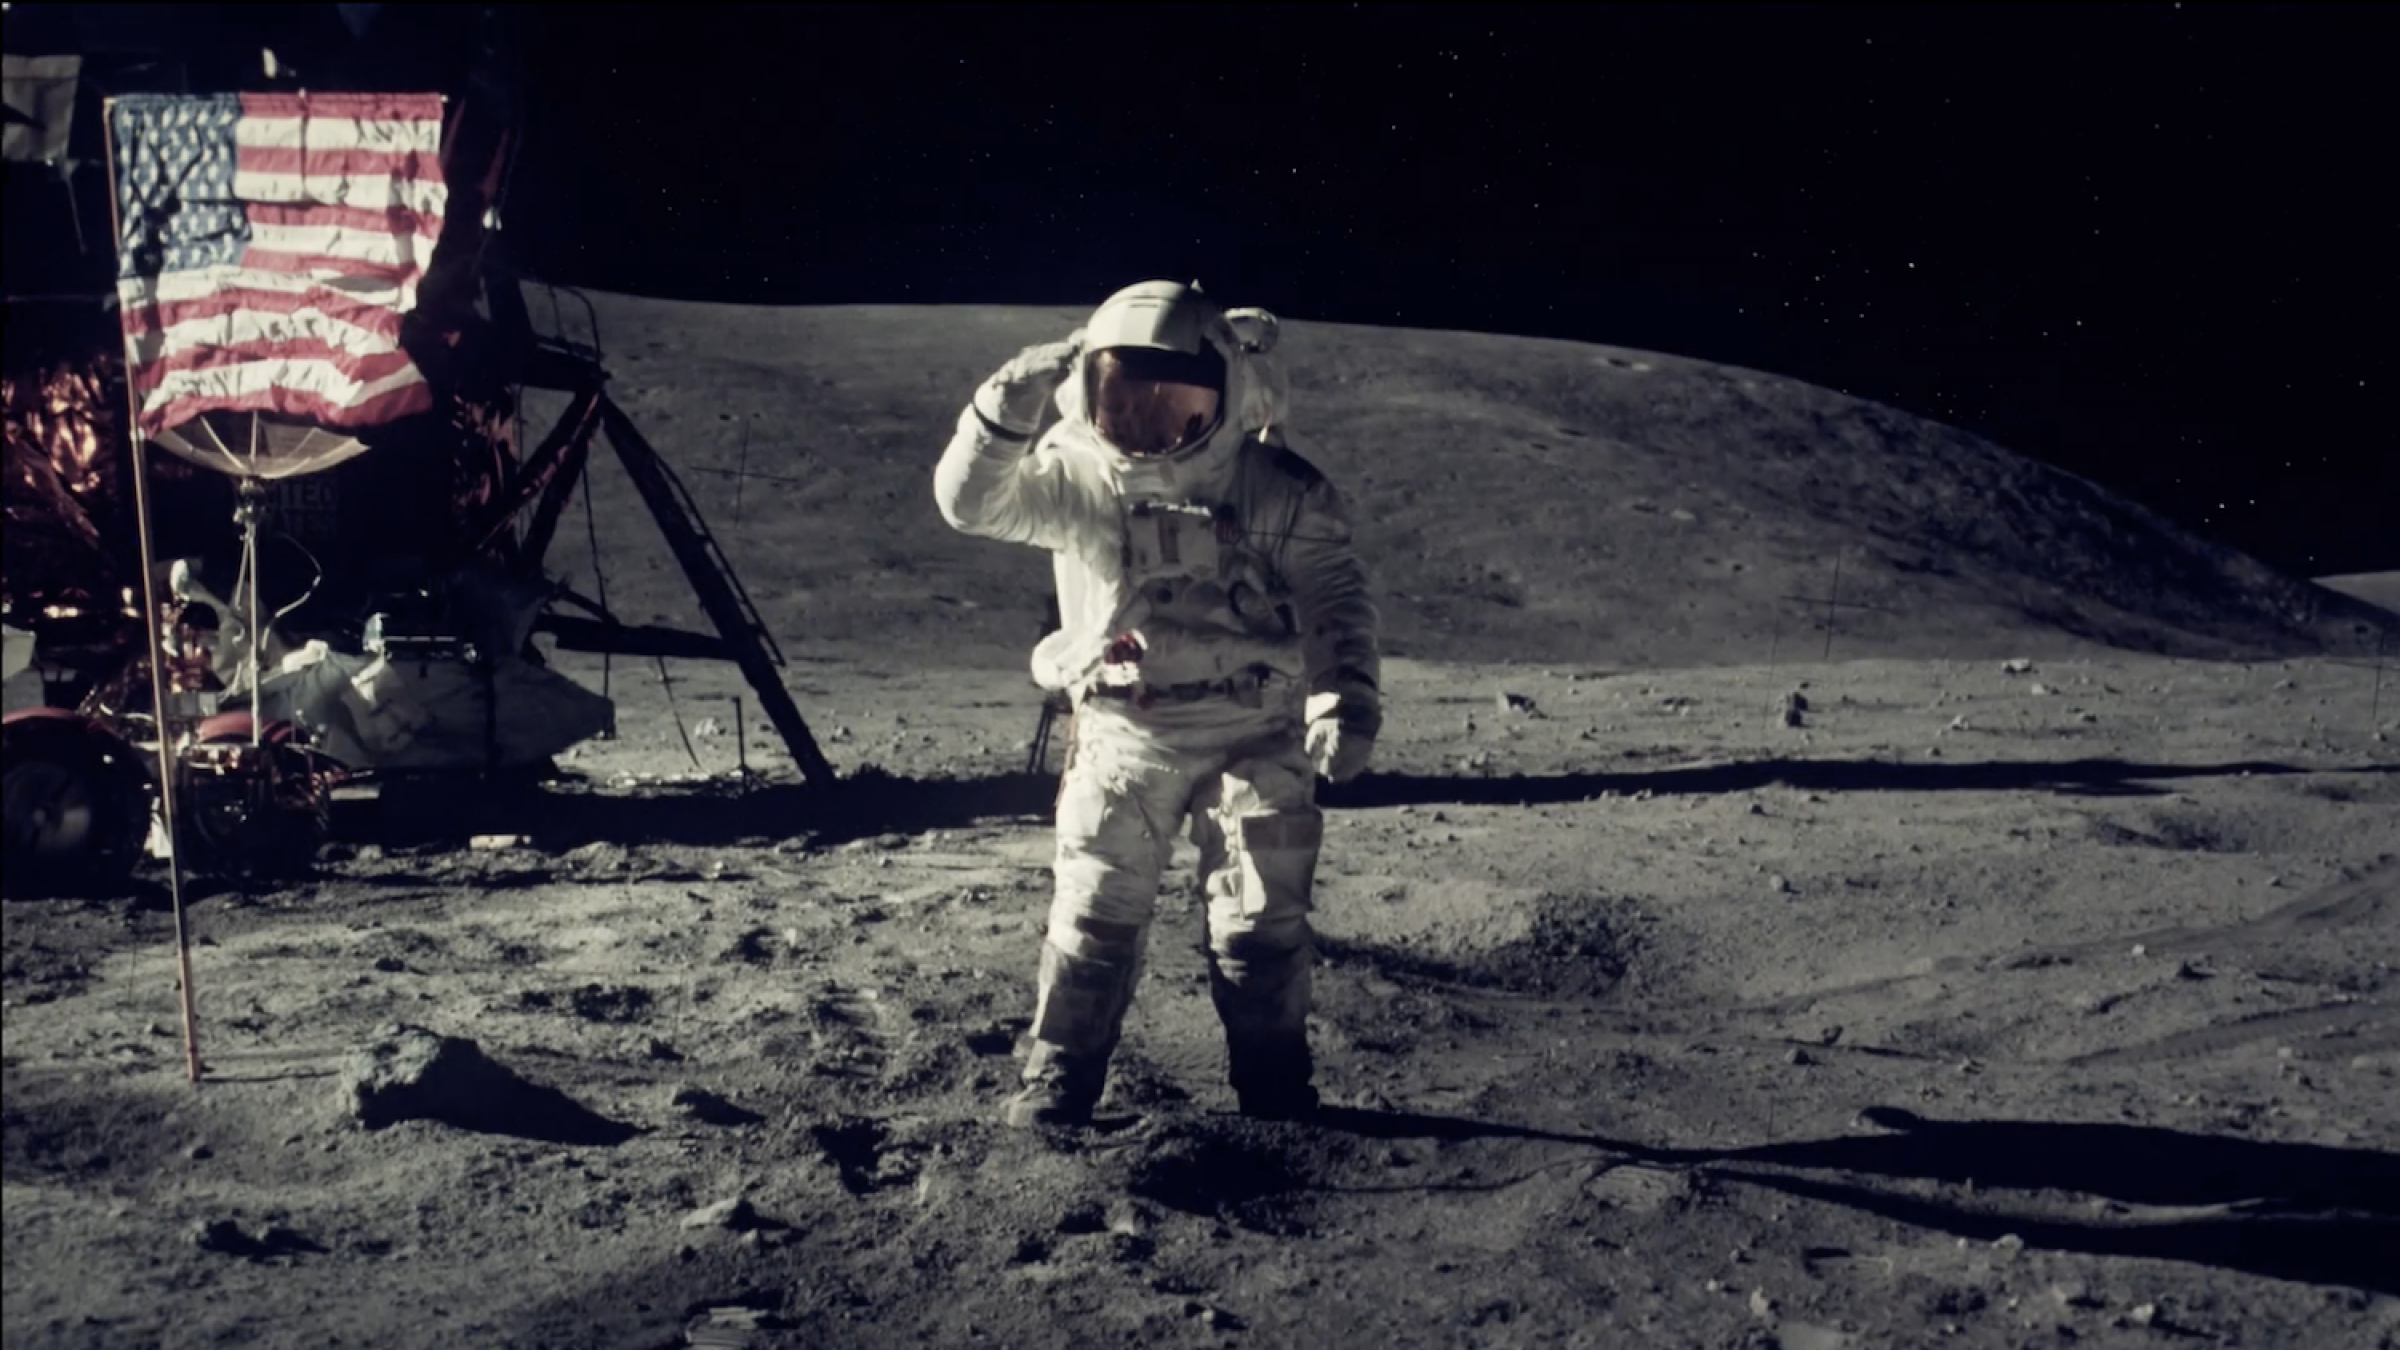 10 amazing facts about the apollo 11 moon landing - HD2400×1350